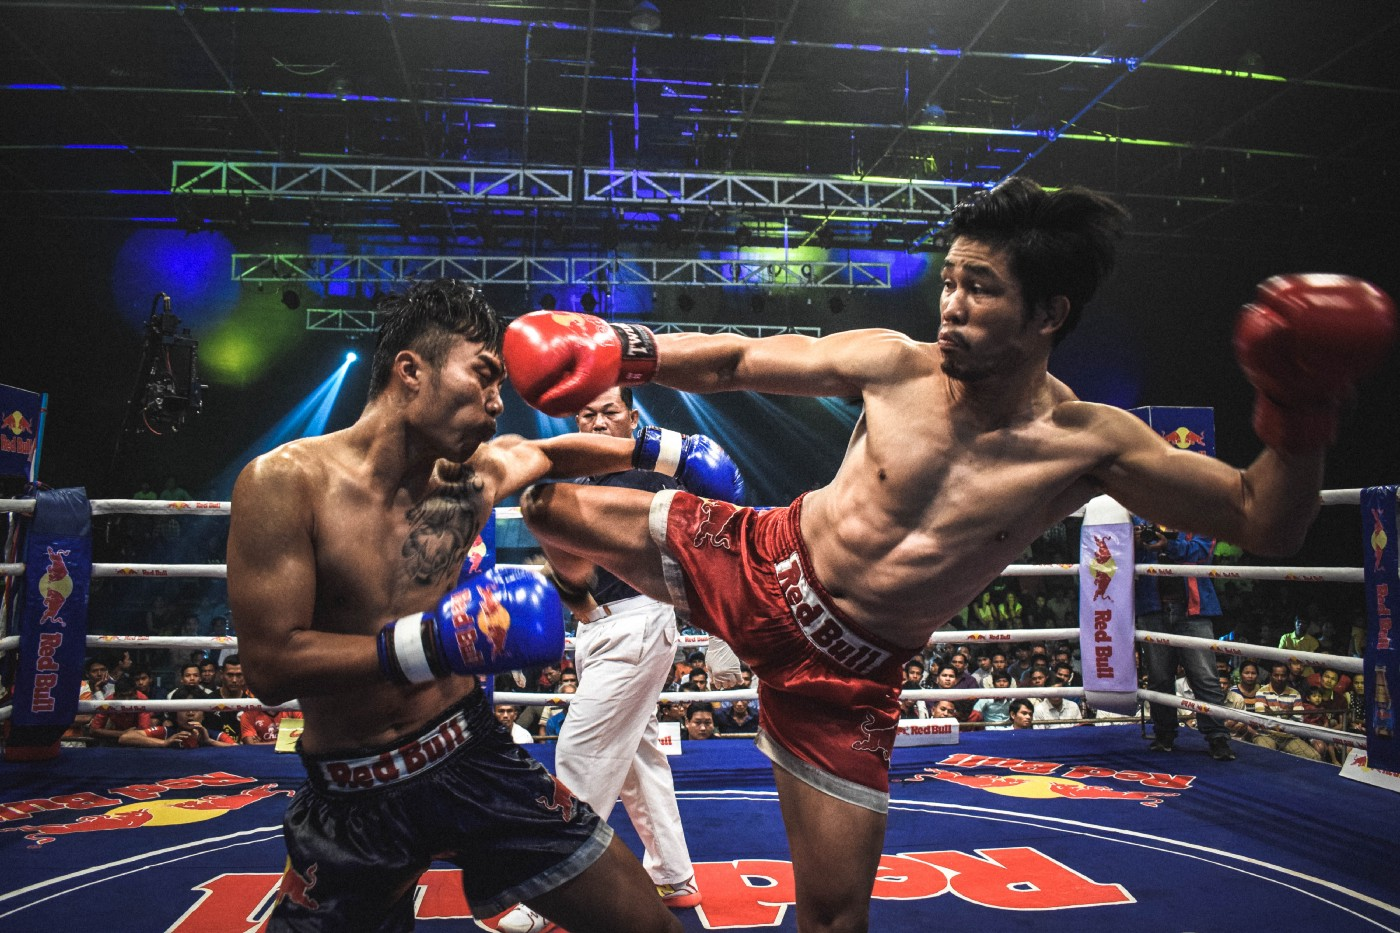 Two Muay Thai boxers fighting